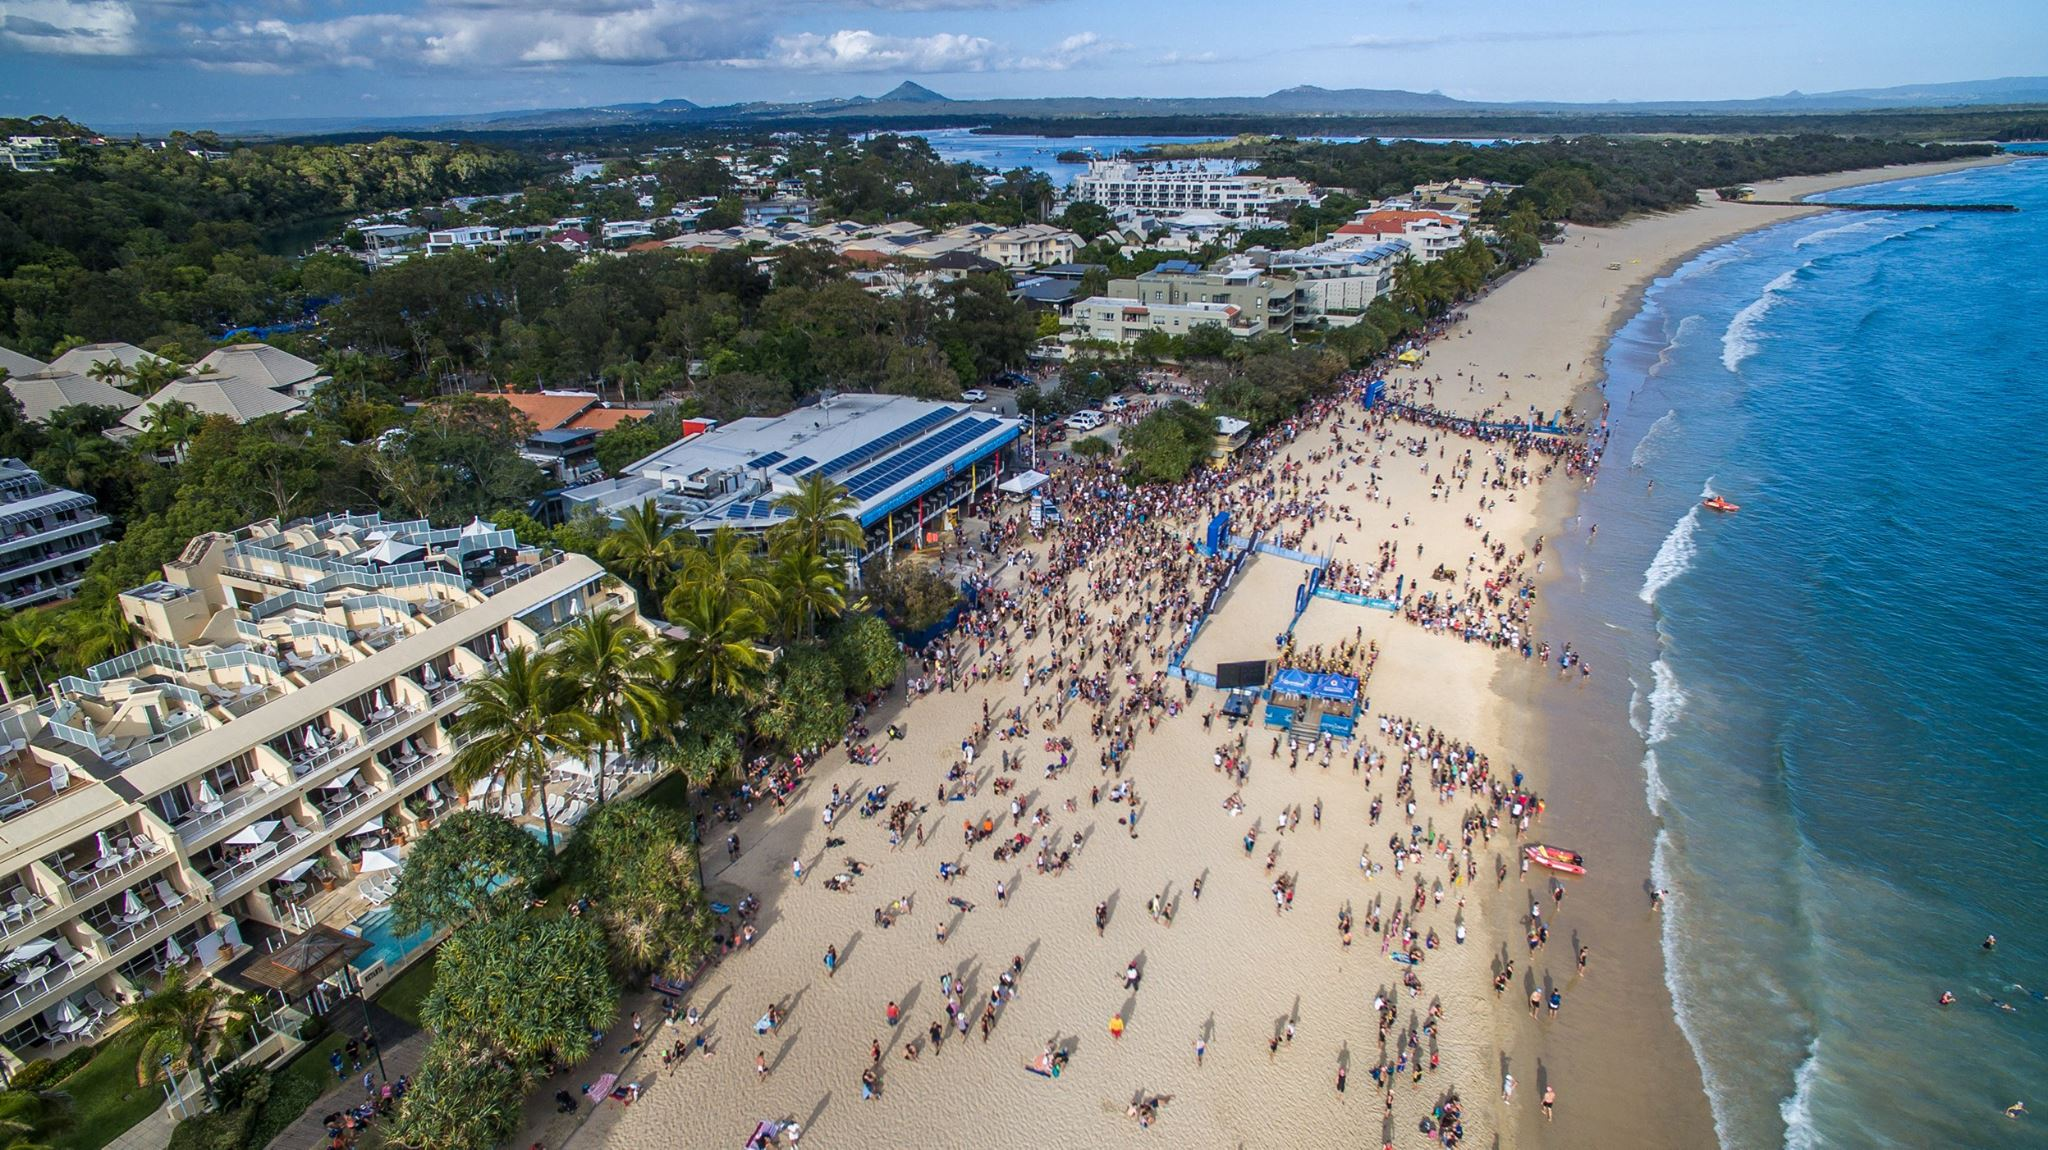 Image courtesy of Noosa Triathlon